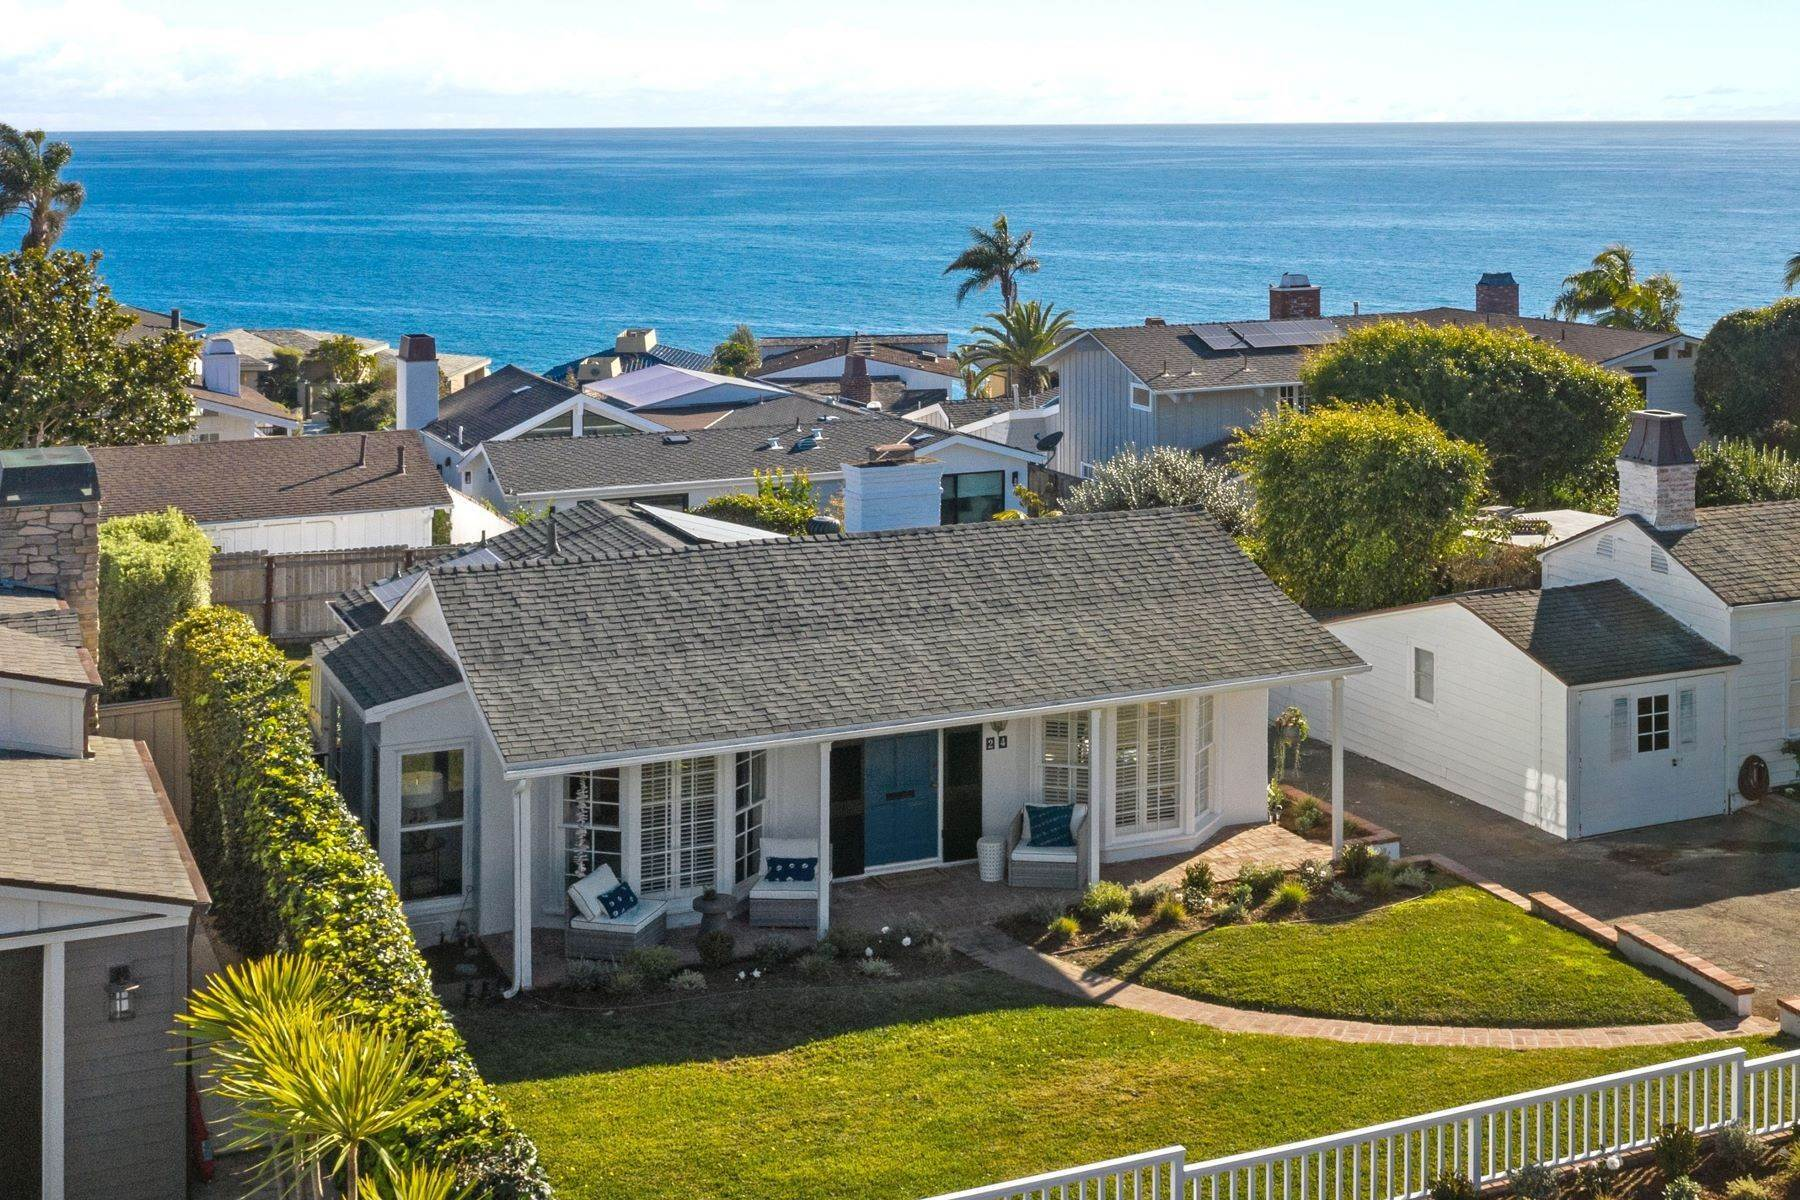 Single Family Homes for Sale at 24 South Portola, Laguna Beach, CA 92651 24 South Portola Laguna Beach, California 92651 United States